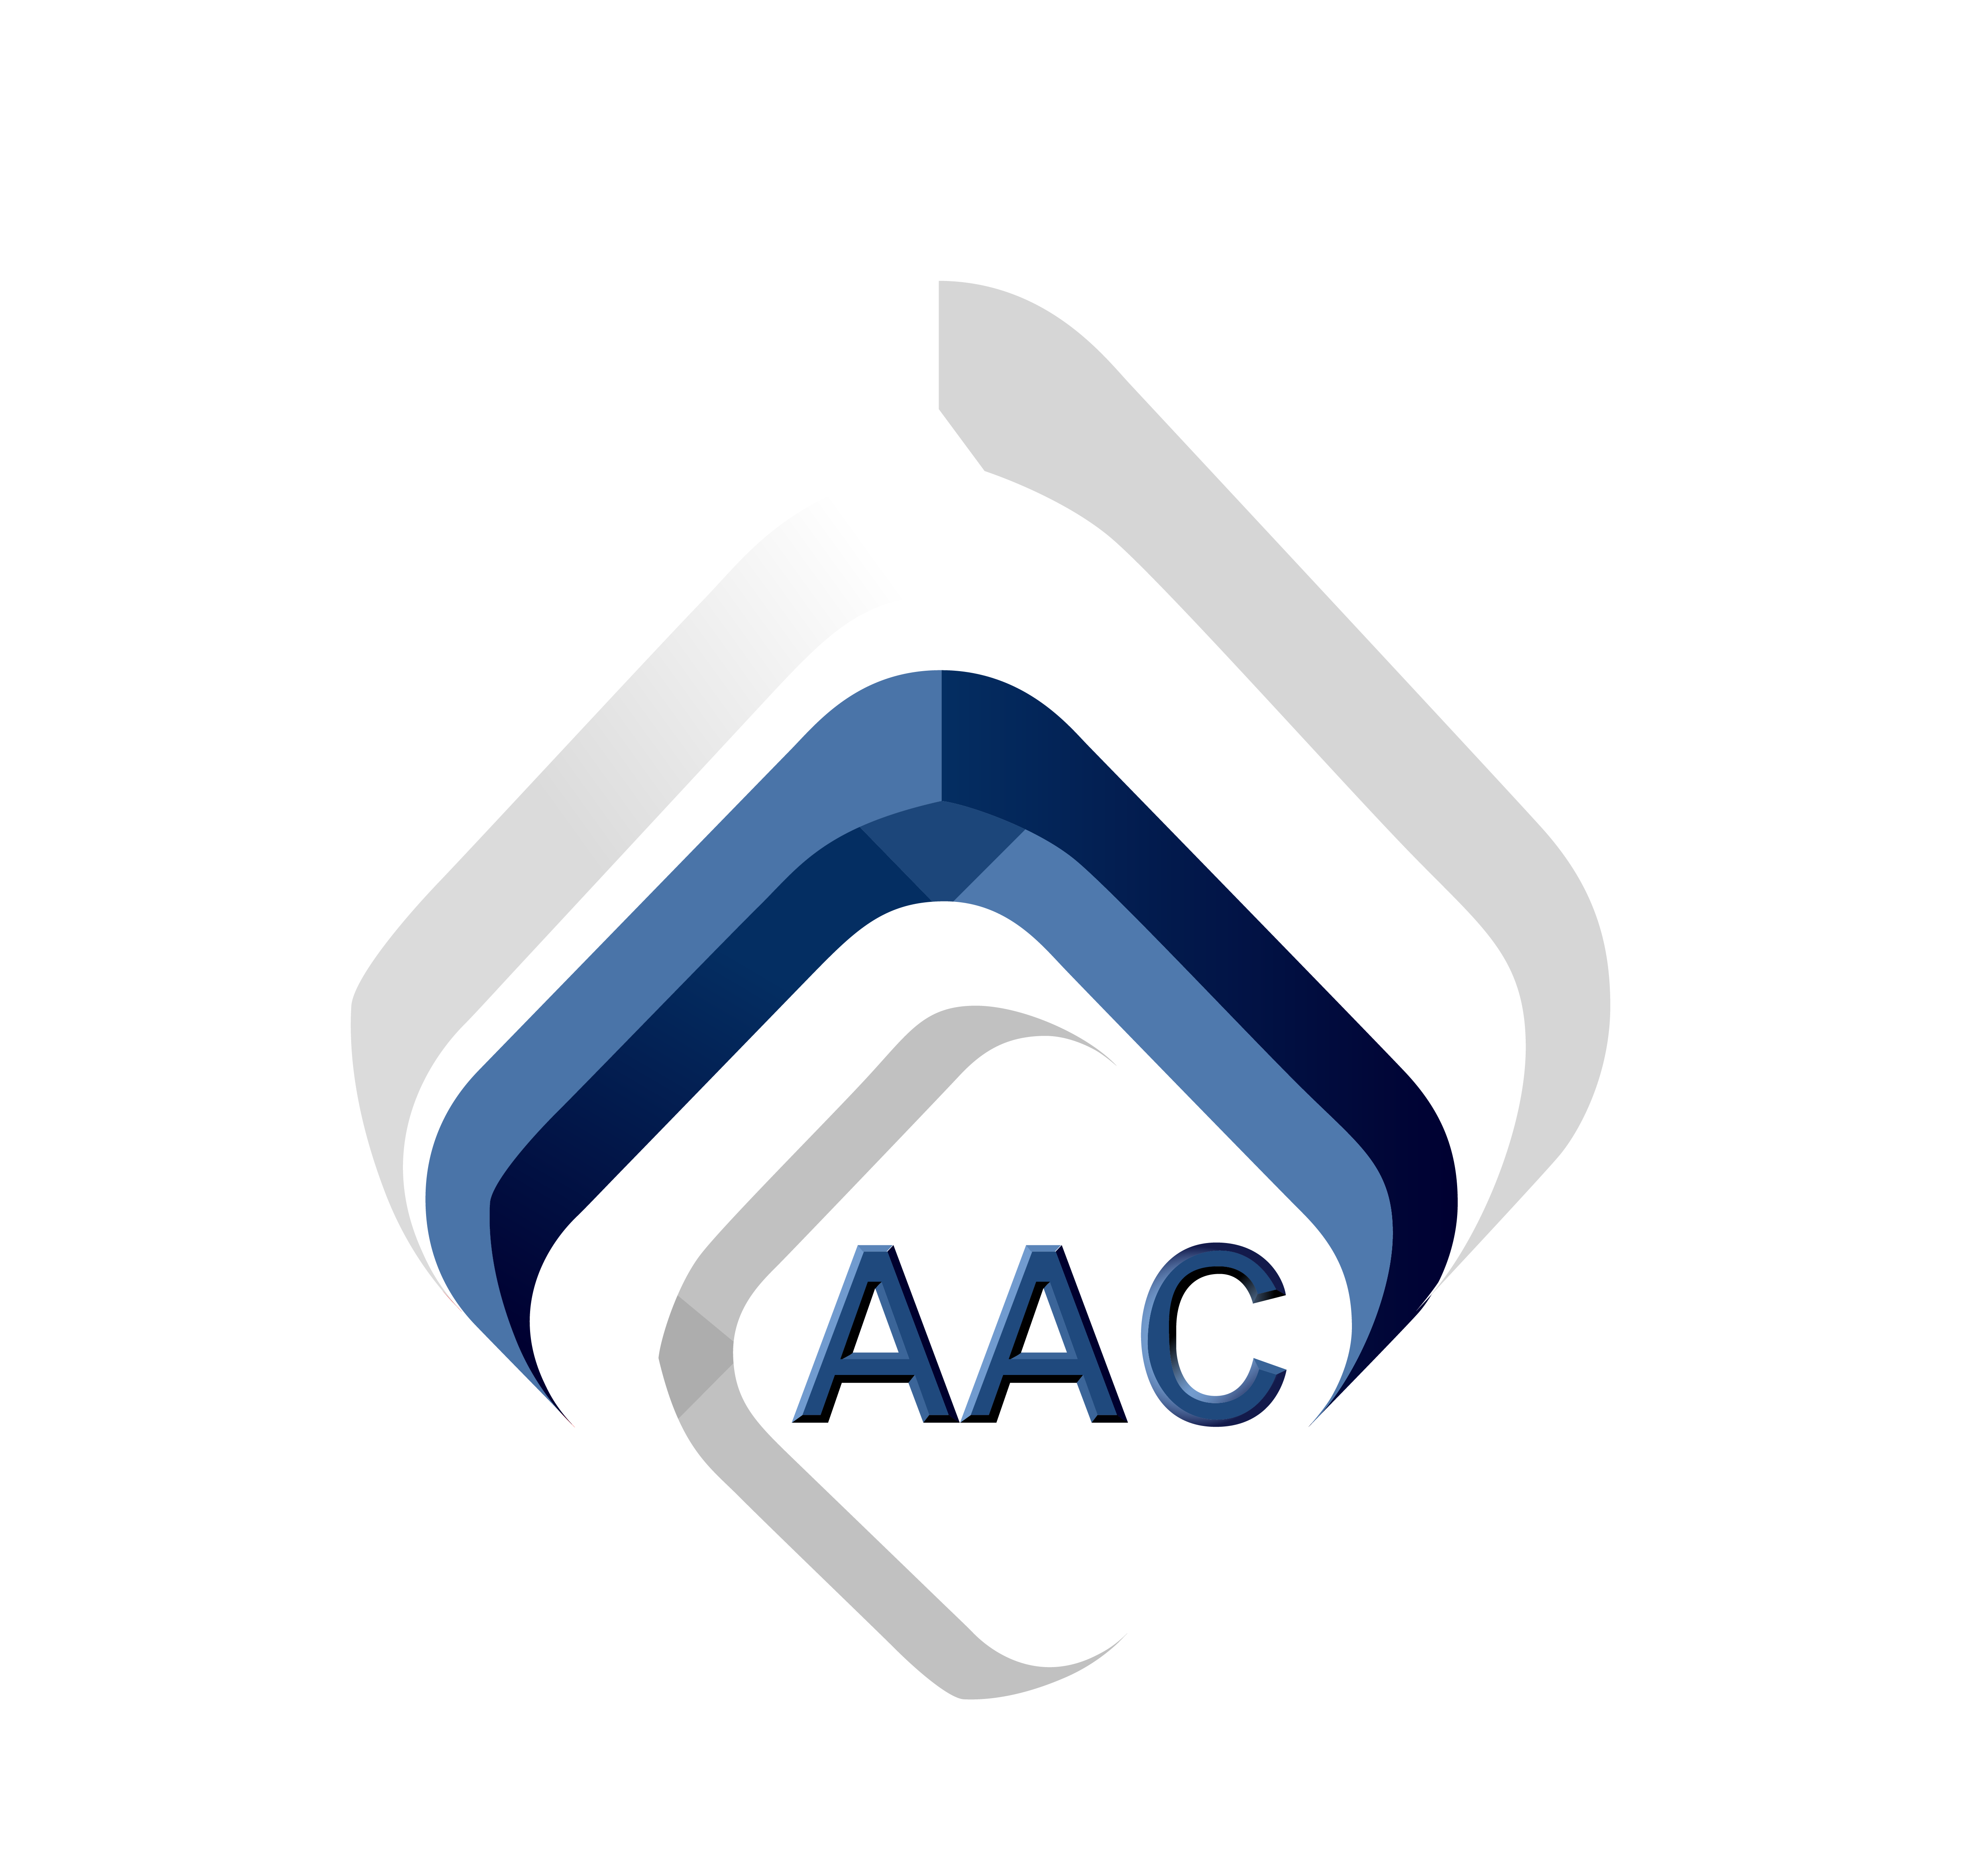 logo aac png transparent logo aacpng images pluspng